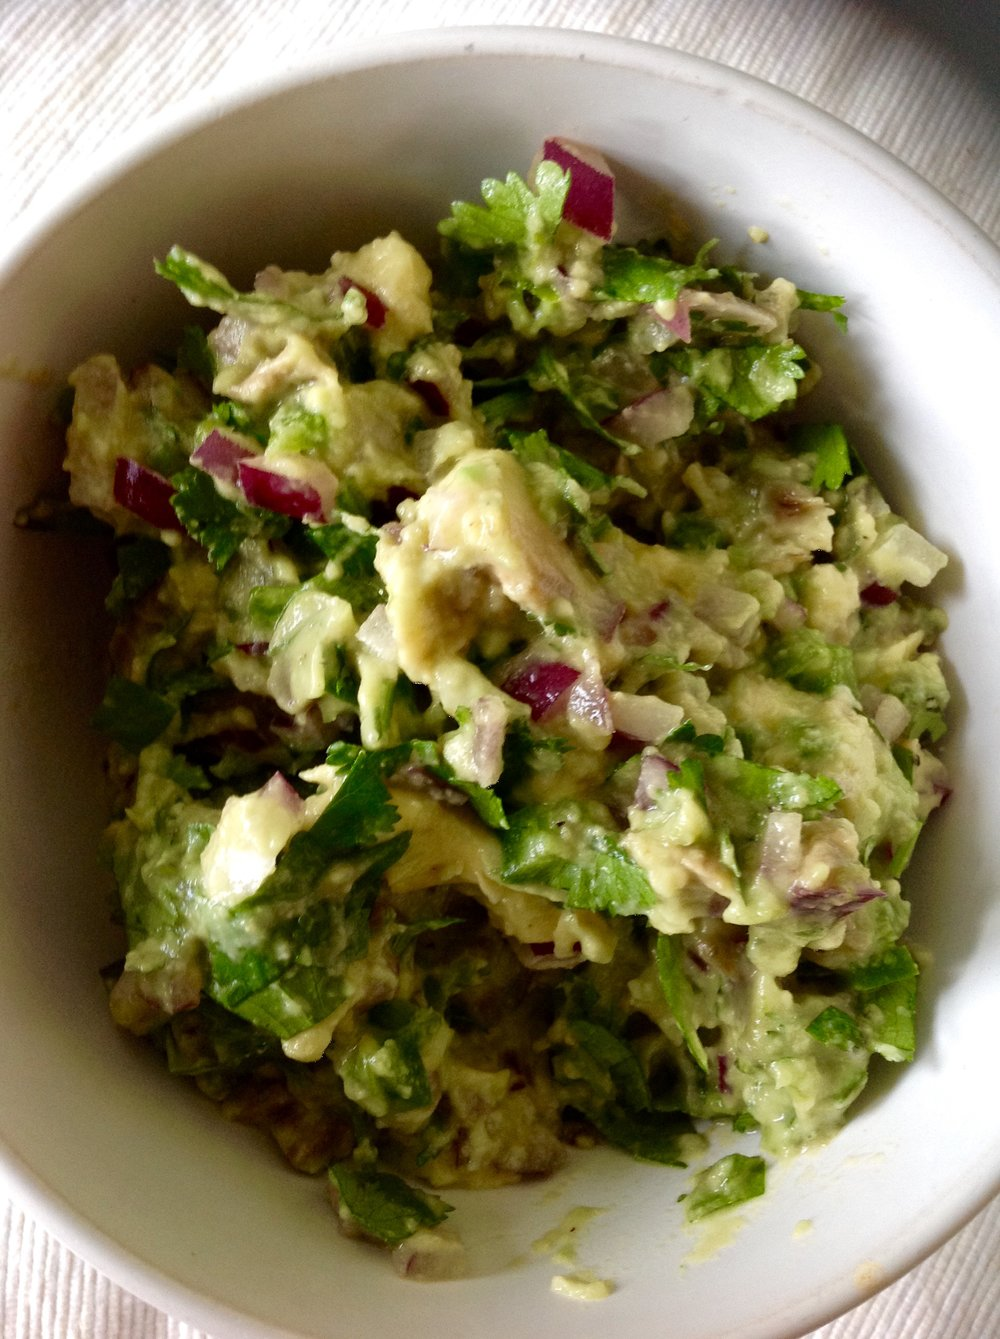 Guacamole - Healthy, Easy, Oil-Free, Plant-Based, Vegan Mexican Avocado Dip Recipe